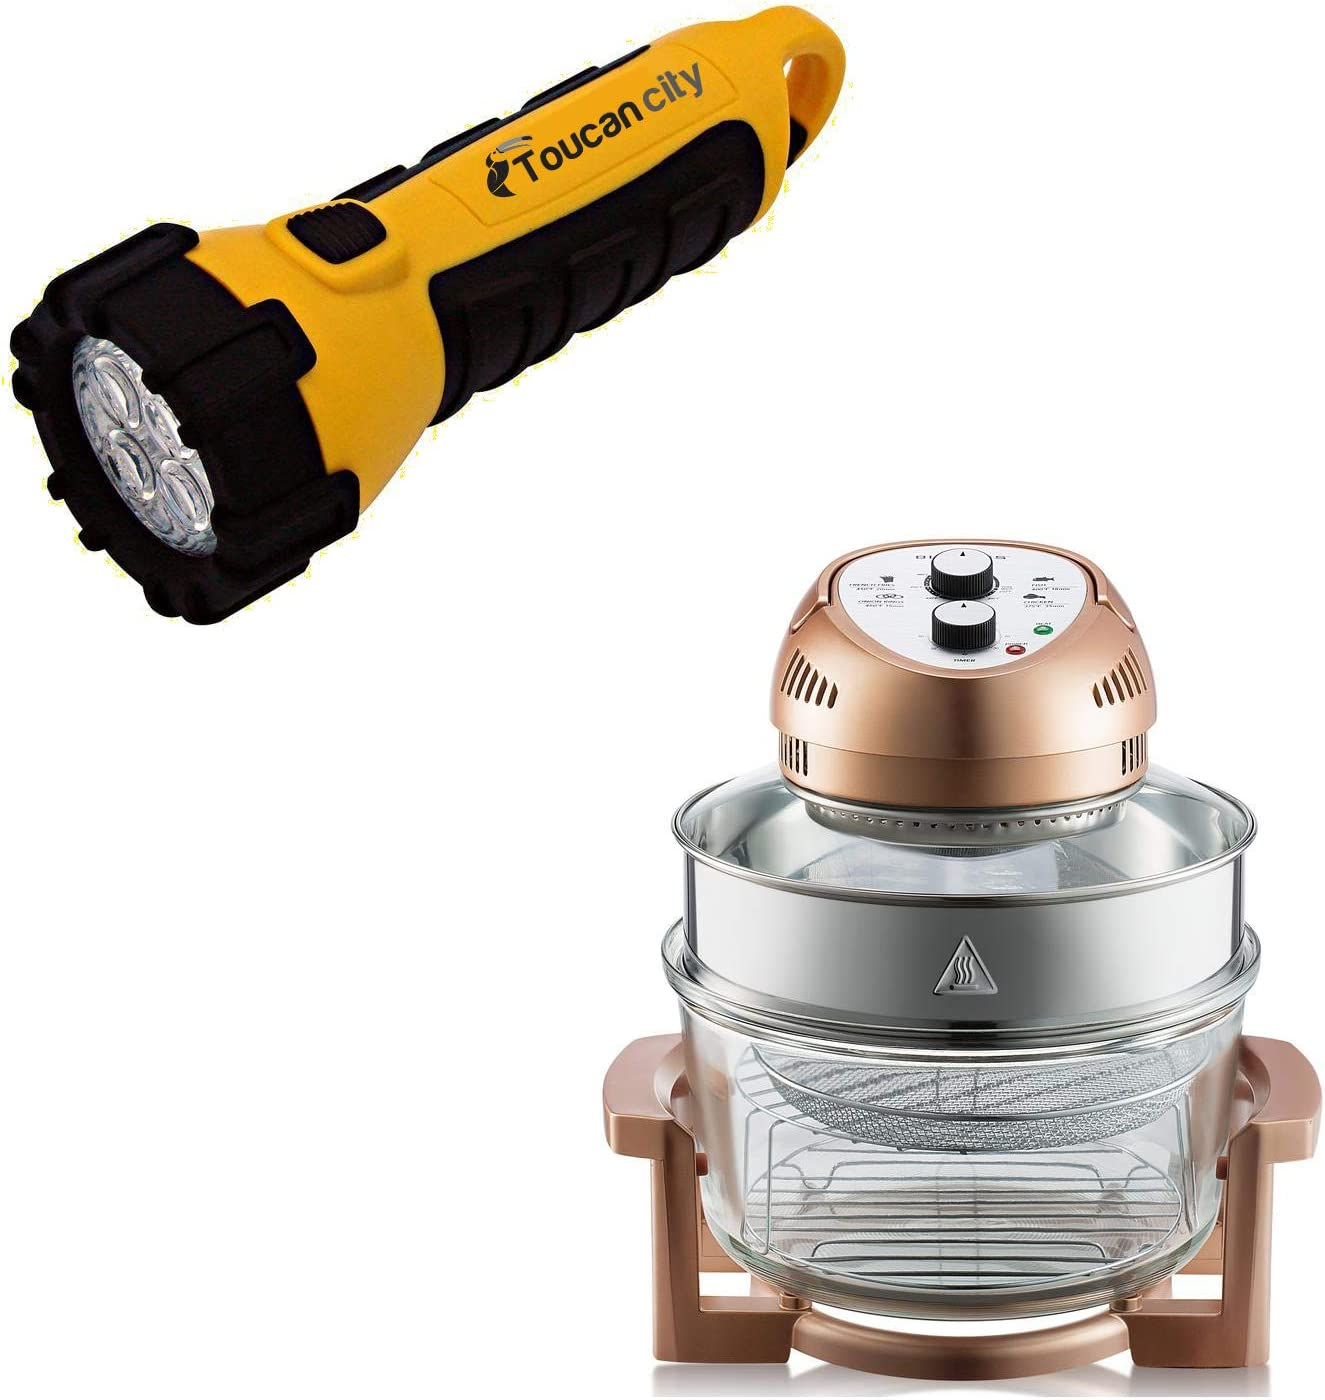 Toucan City LED Flashlight and Big Boss 16 Qt. Copper Oil-less Air r with Built-In Timer 1753